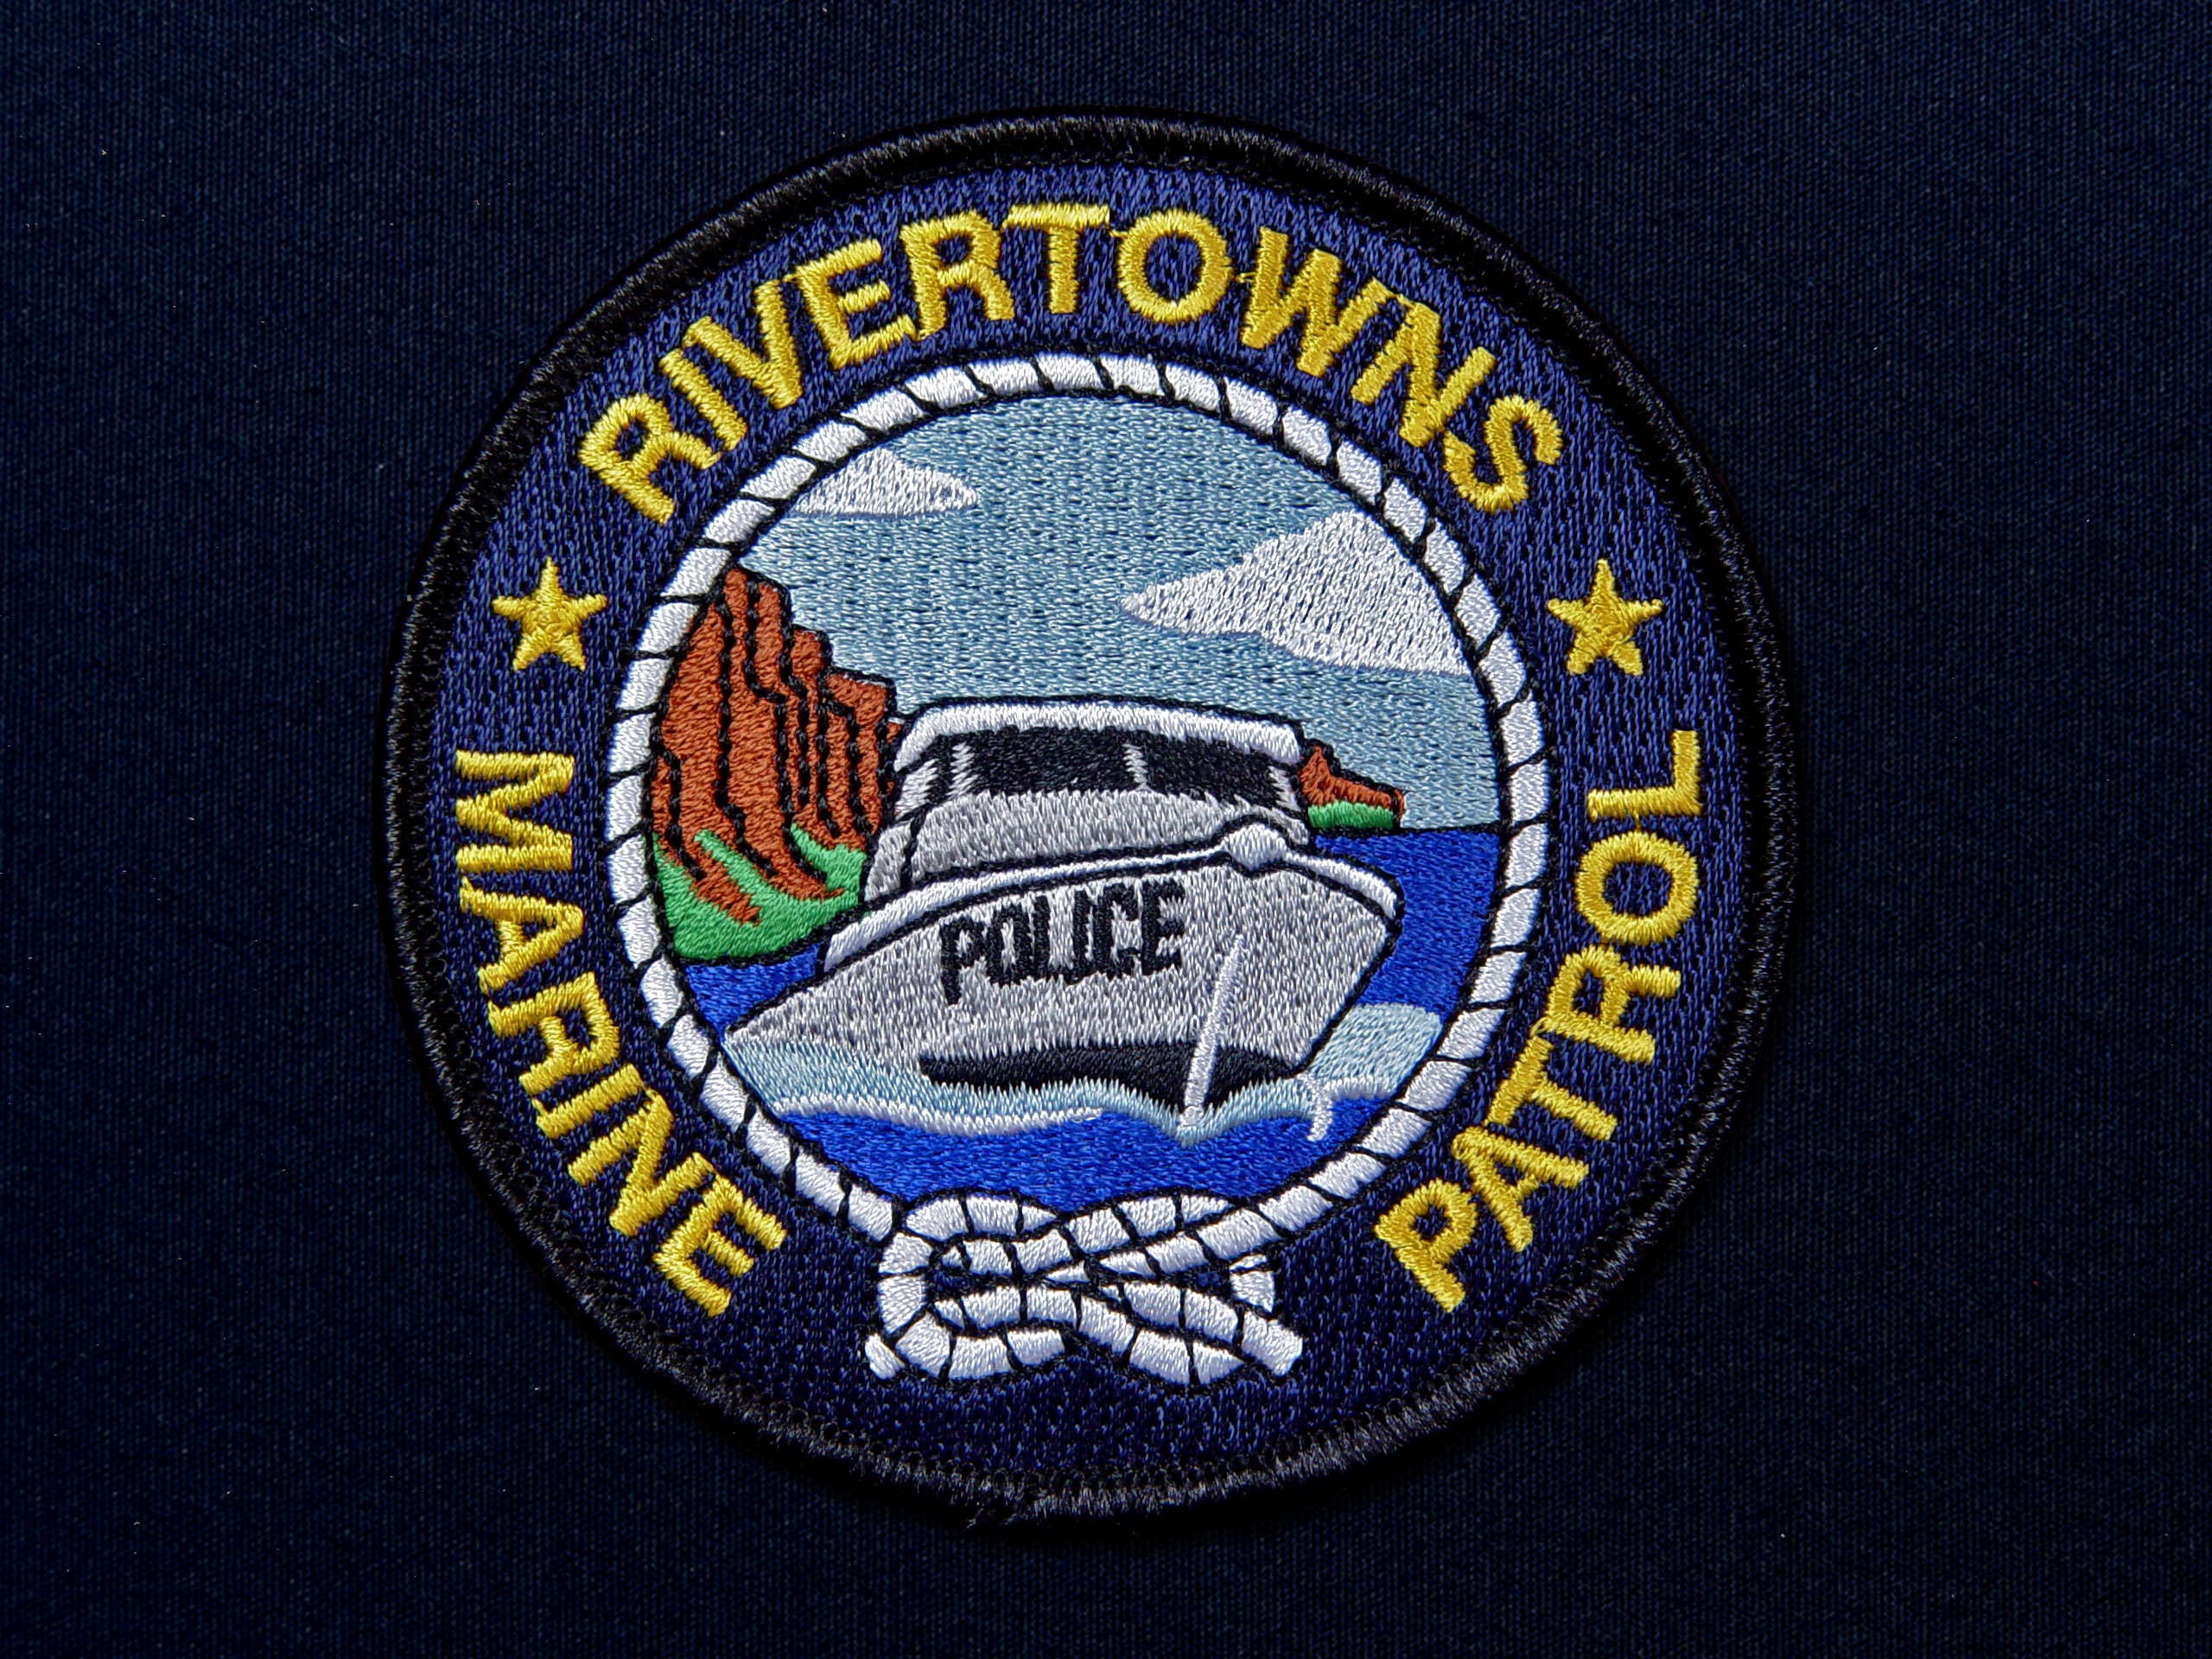 Rivertowns Marine Patrol